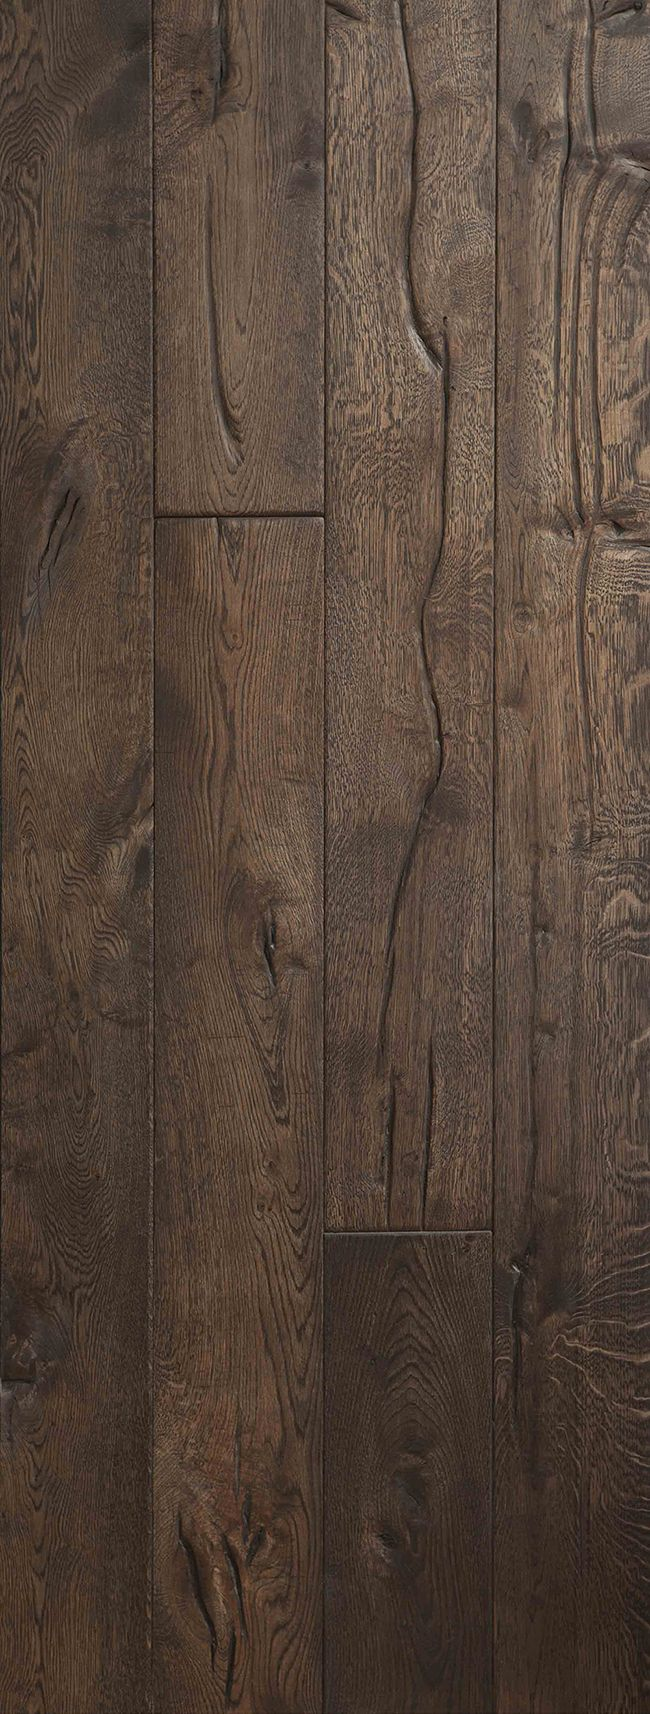 AFRICAN BROWN SAUVAGE Engineered Rustic Oak